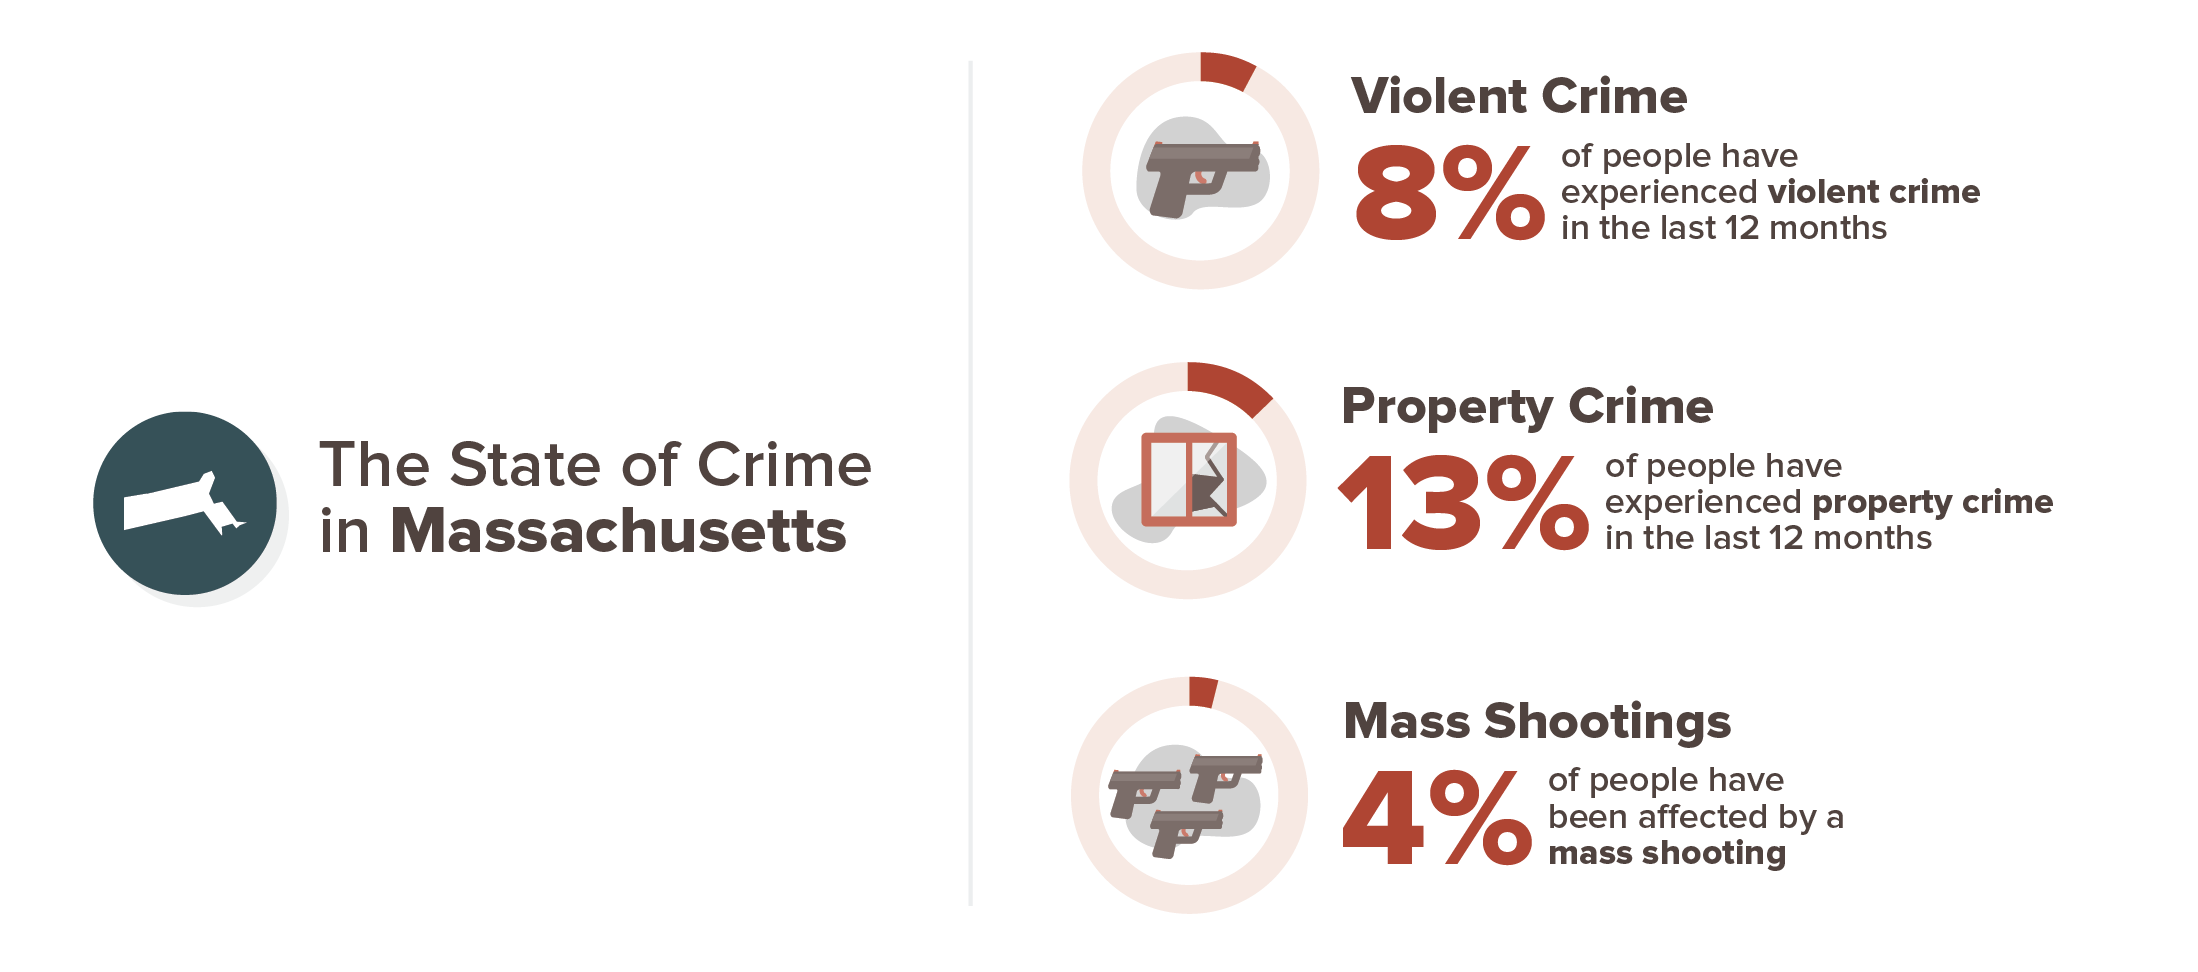 8% of Massachusetts' residents have experienced violent crime in the last 12 months. 13% have experienced property crime in the last 12 months. And 4% of Massachusetts' residents have been affected by a mass shooting in their lifetime.